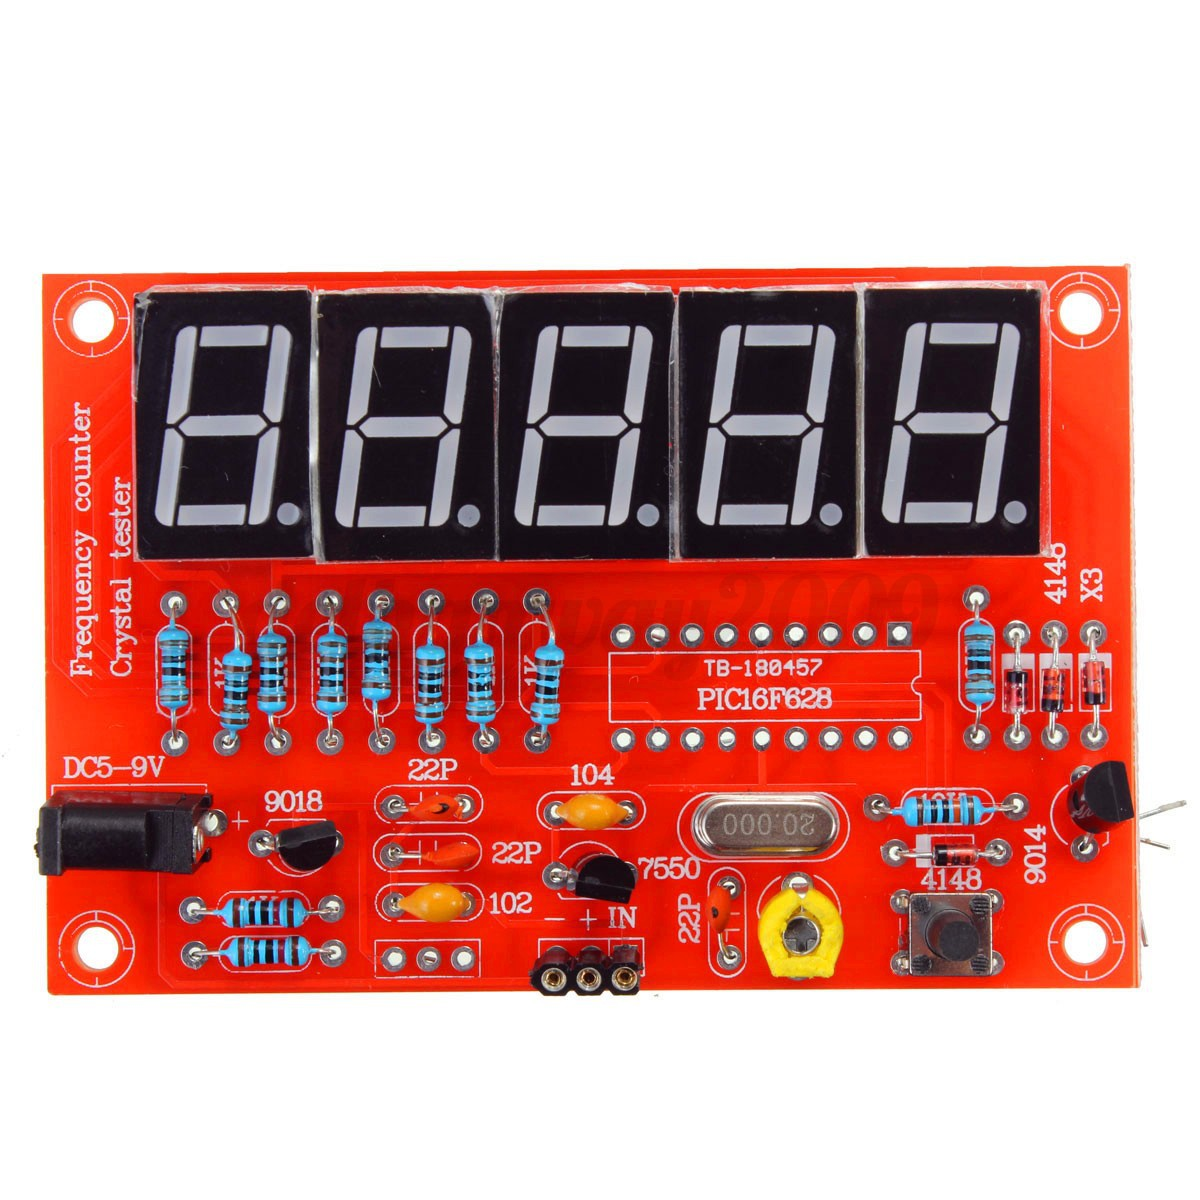 Frequency Counter Kit : Hz mhz crystal oscillator frequency counter meter